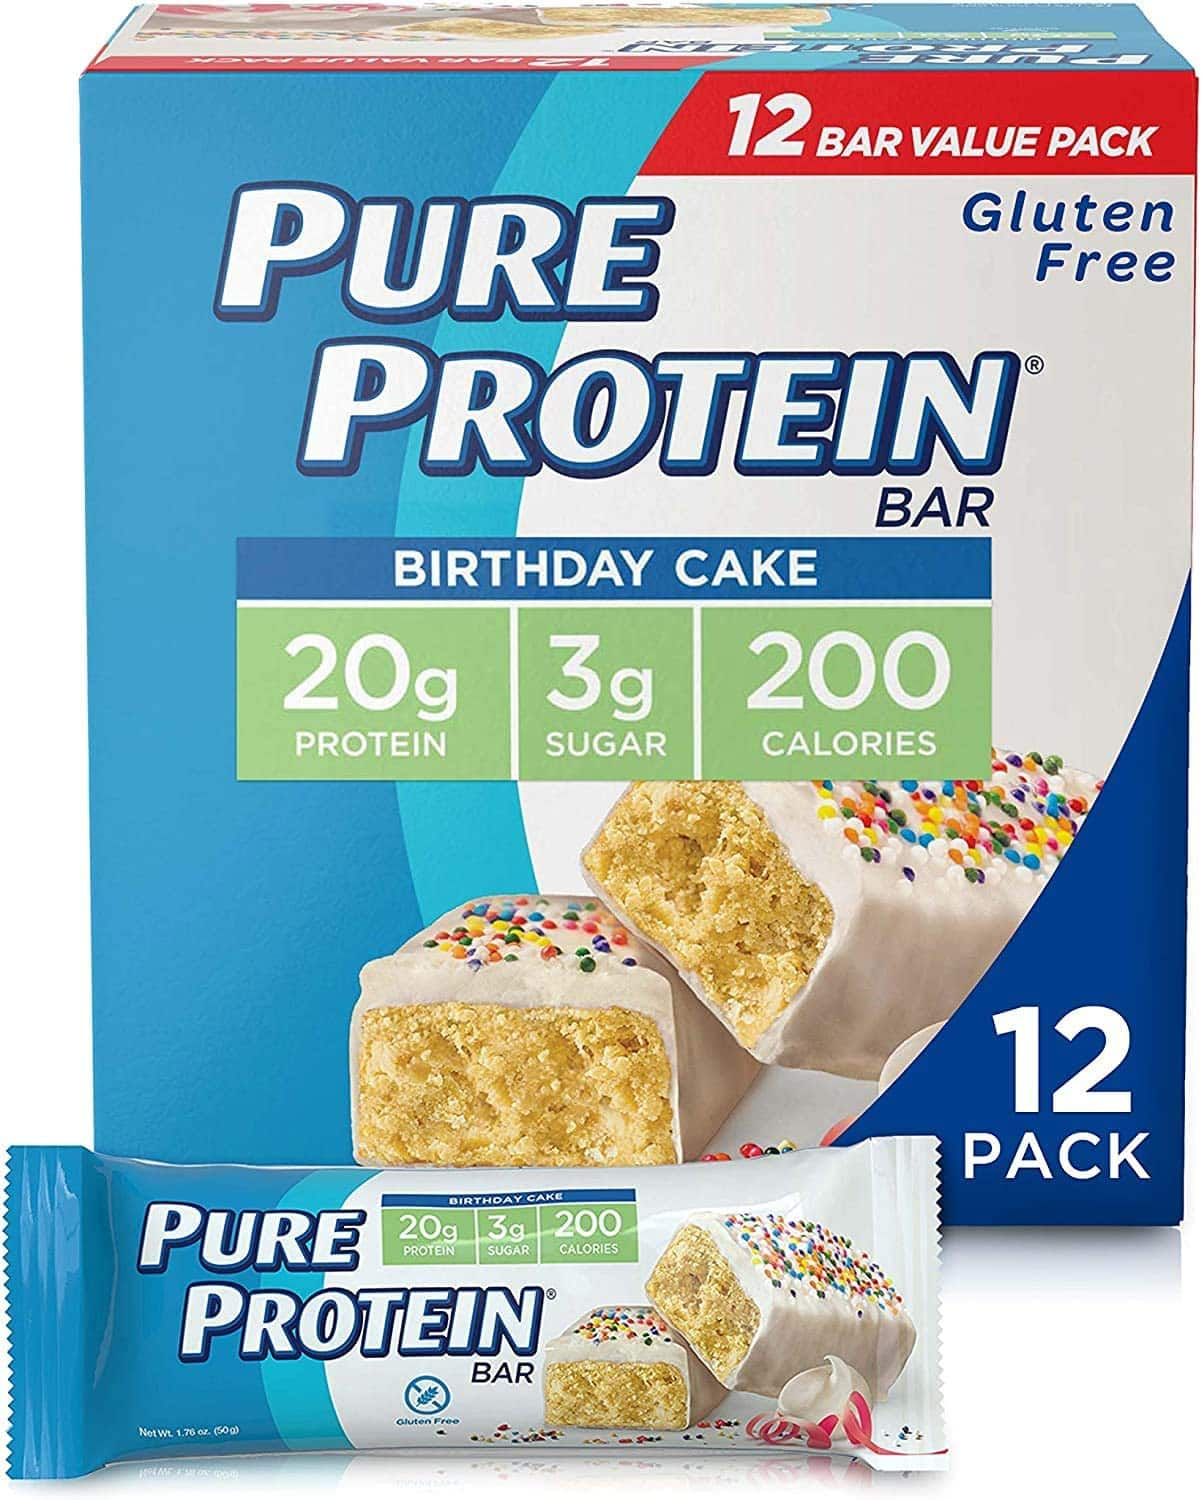 Pure Various Flavors - Protein Bars, High Protein, Nutritious Snacks to Support Energy $8.84